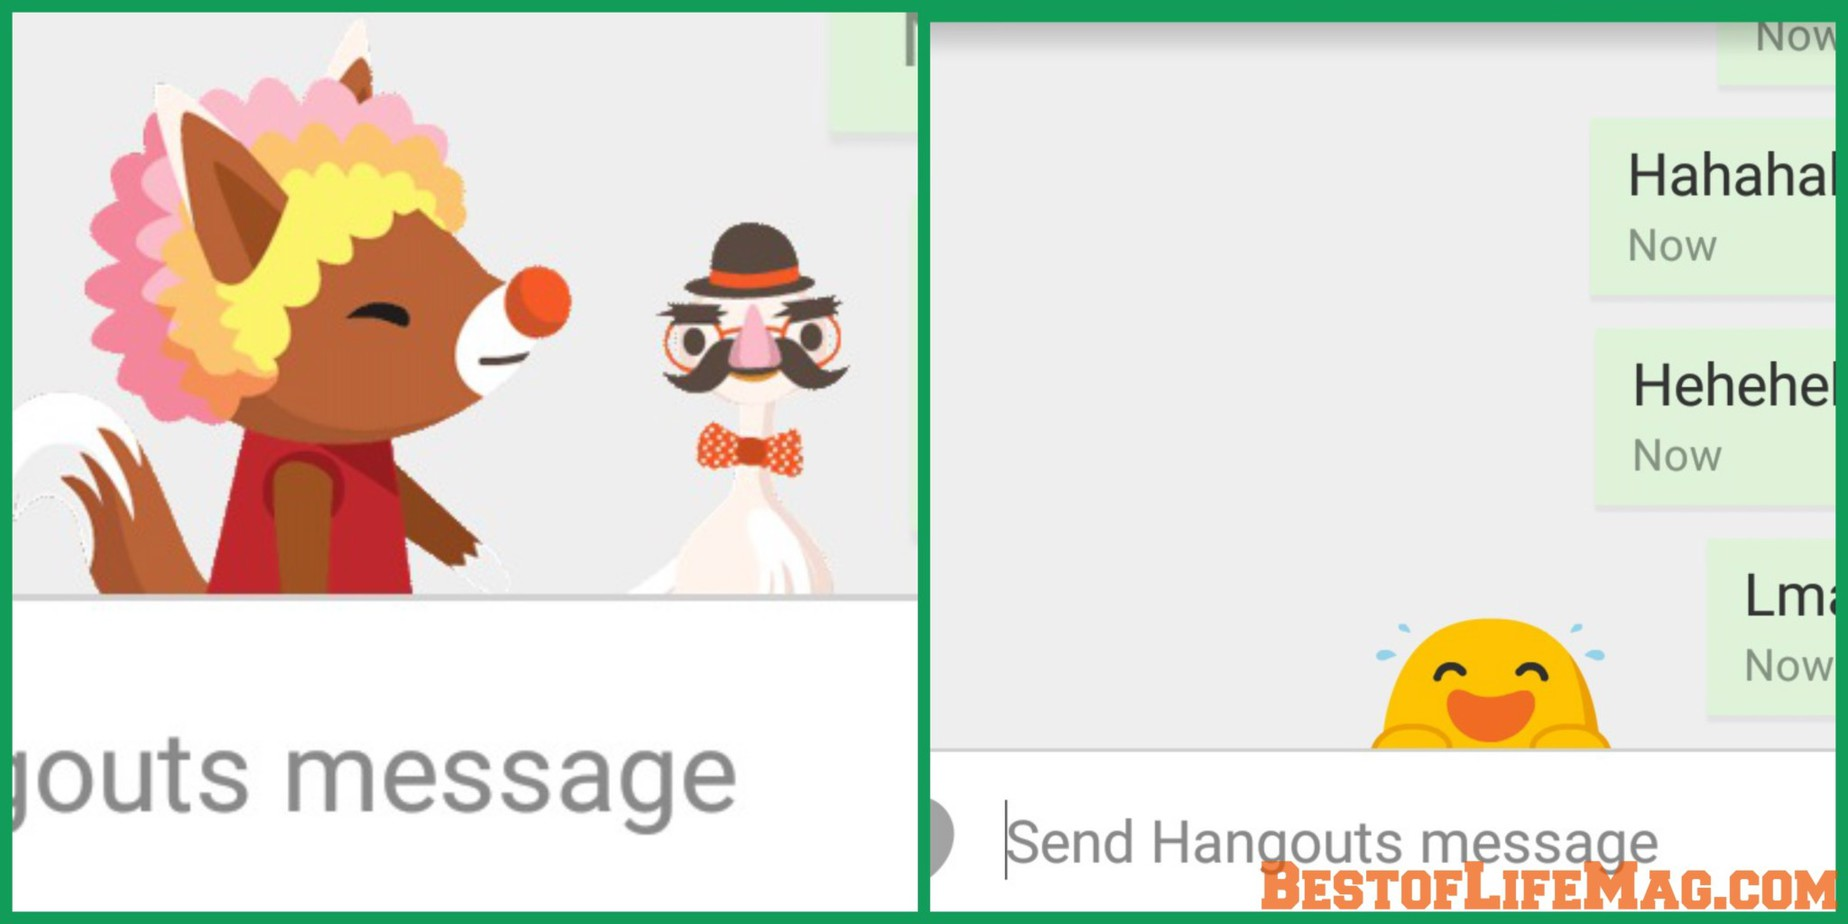 Want to have some fun with Google Hangout? Check out these hidden emoji that you can find with one word or phrase inside Hangouts.